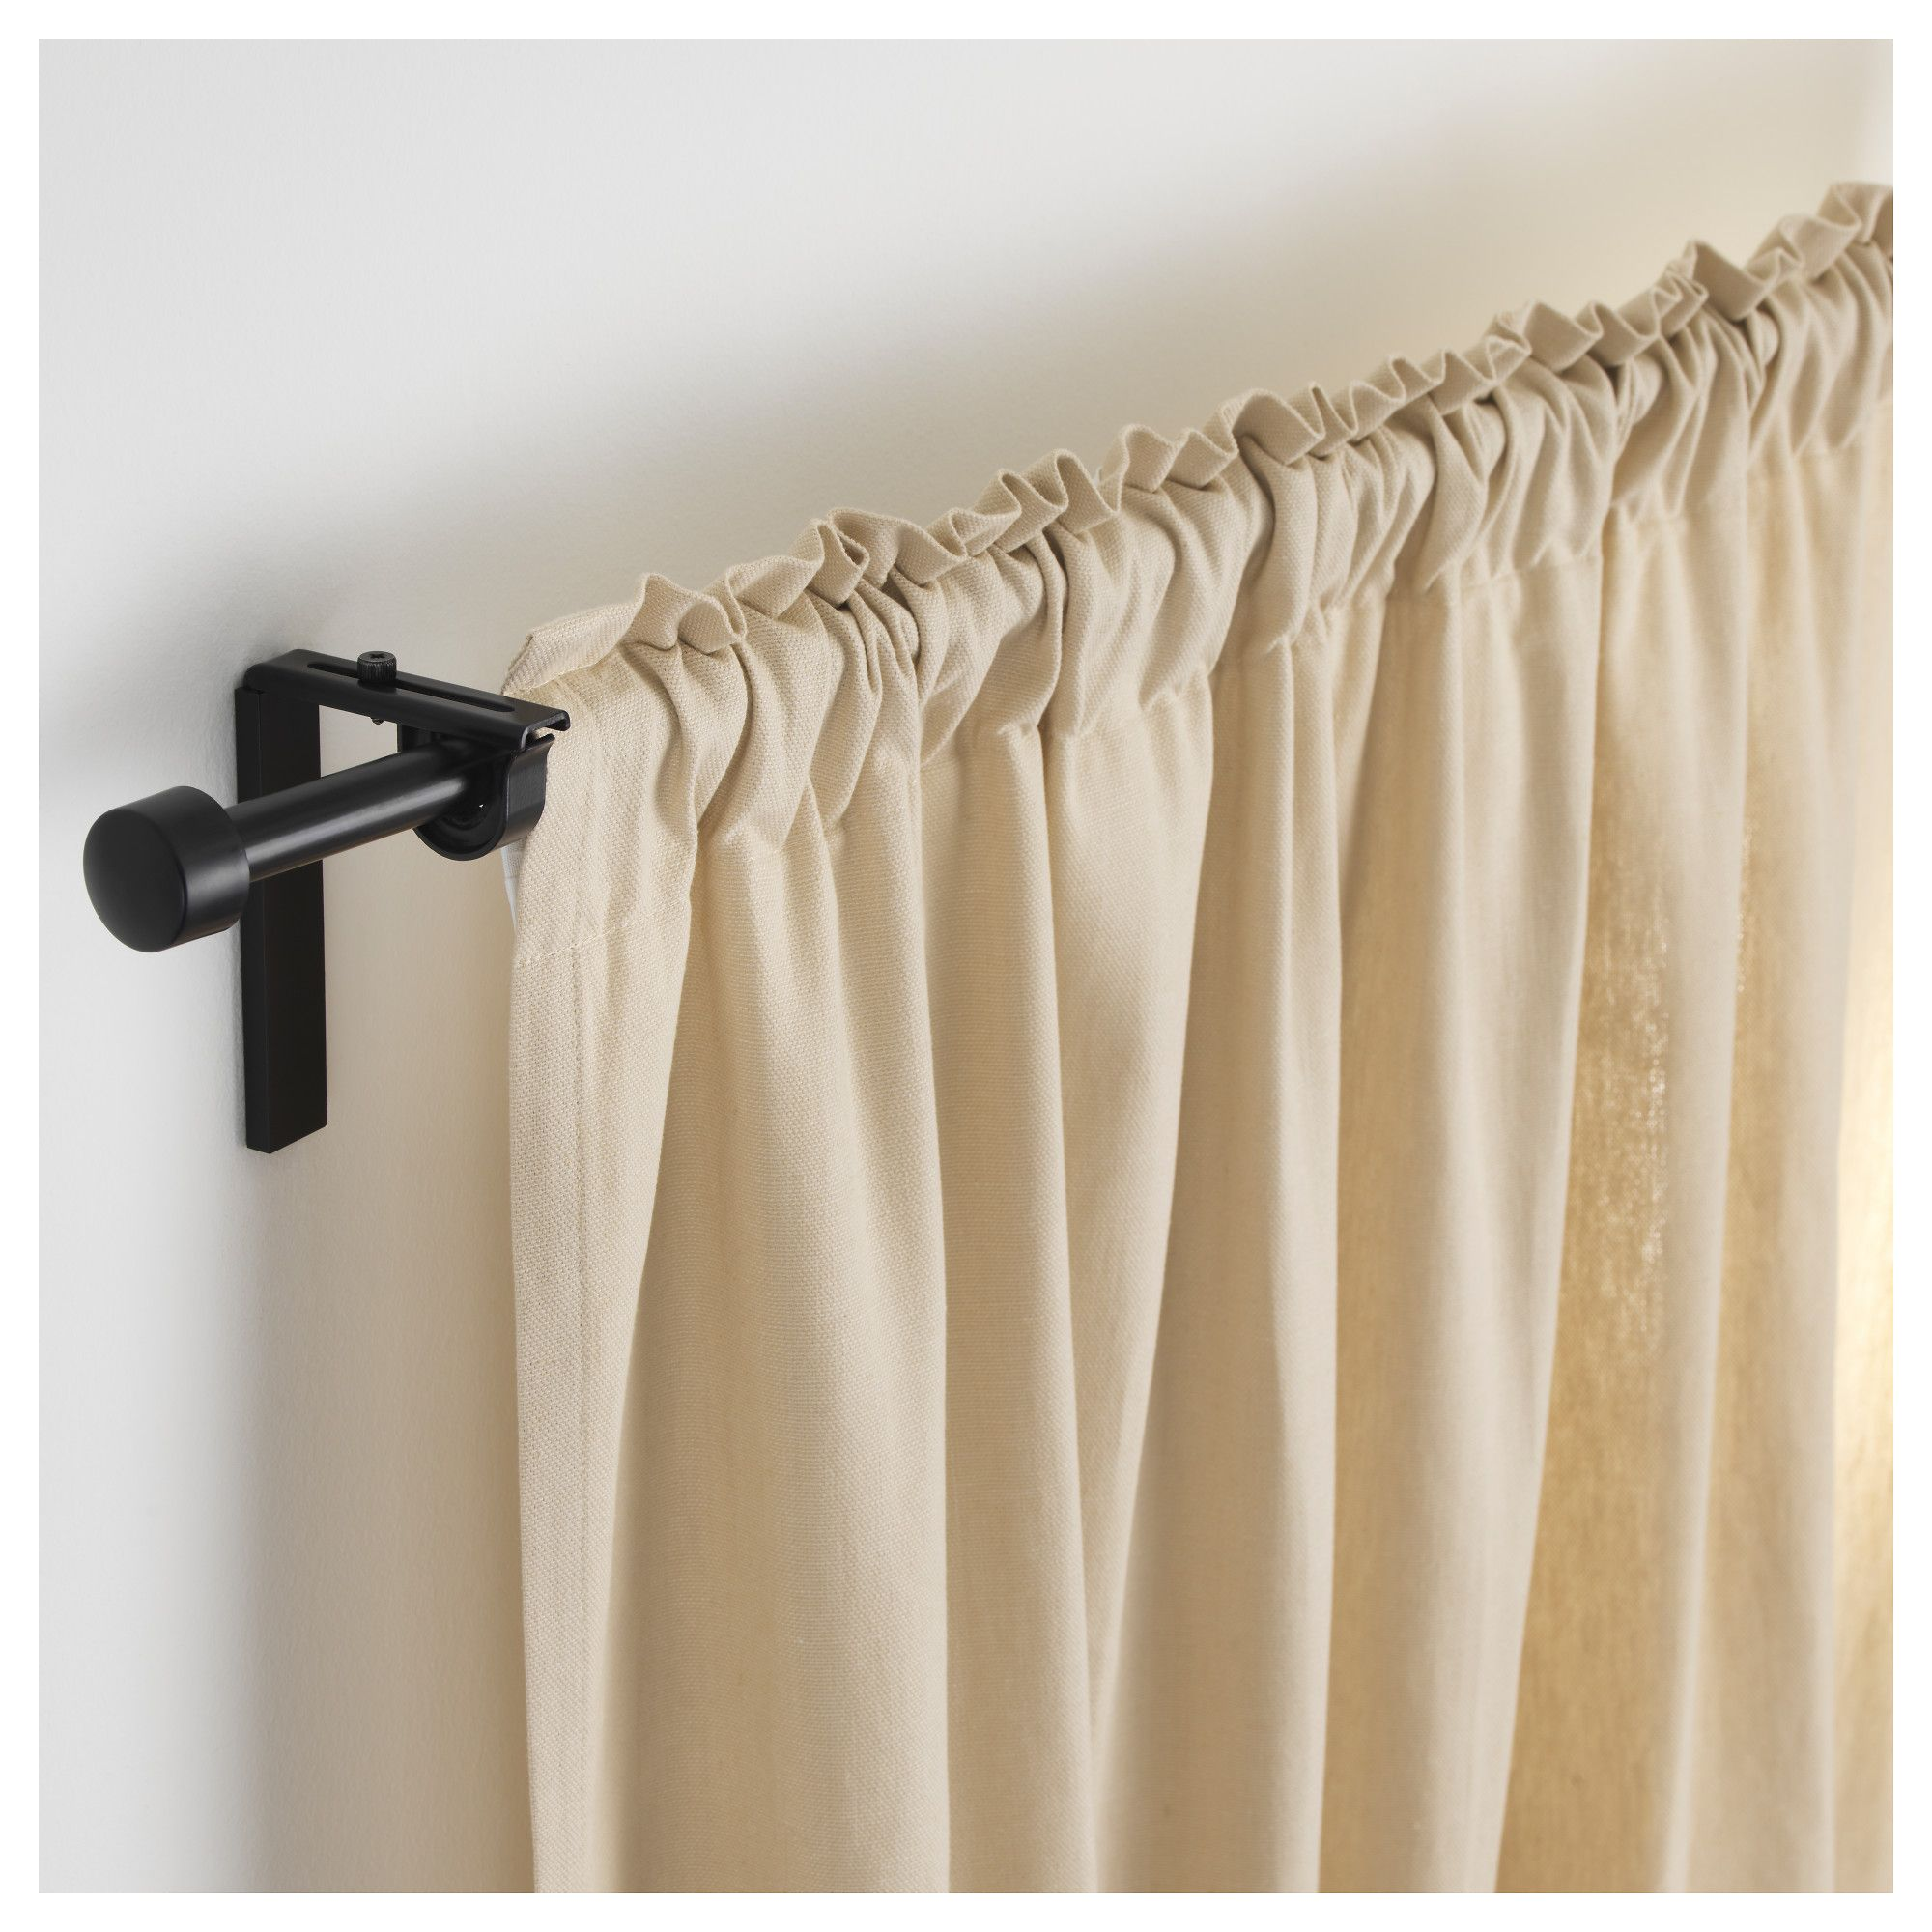 Different holders for curtains